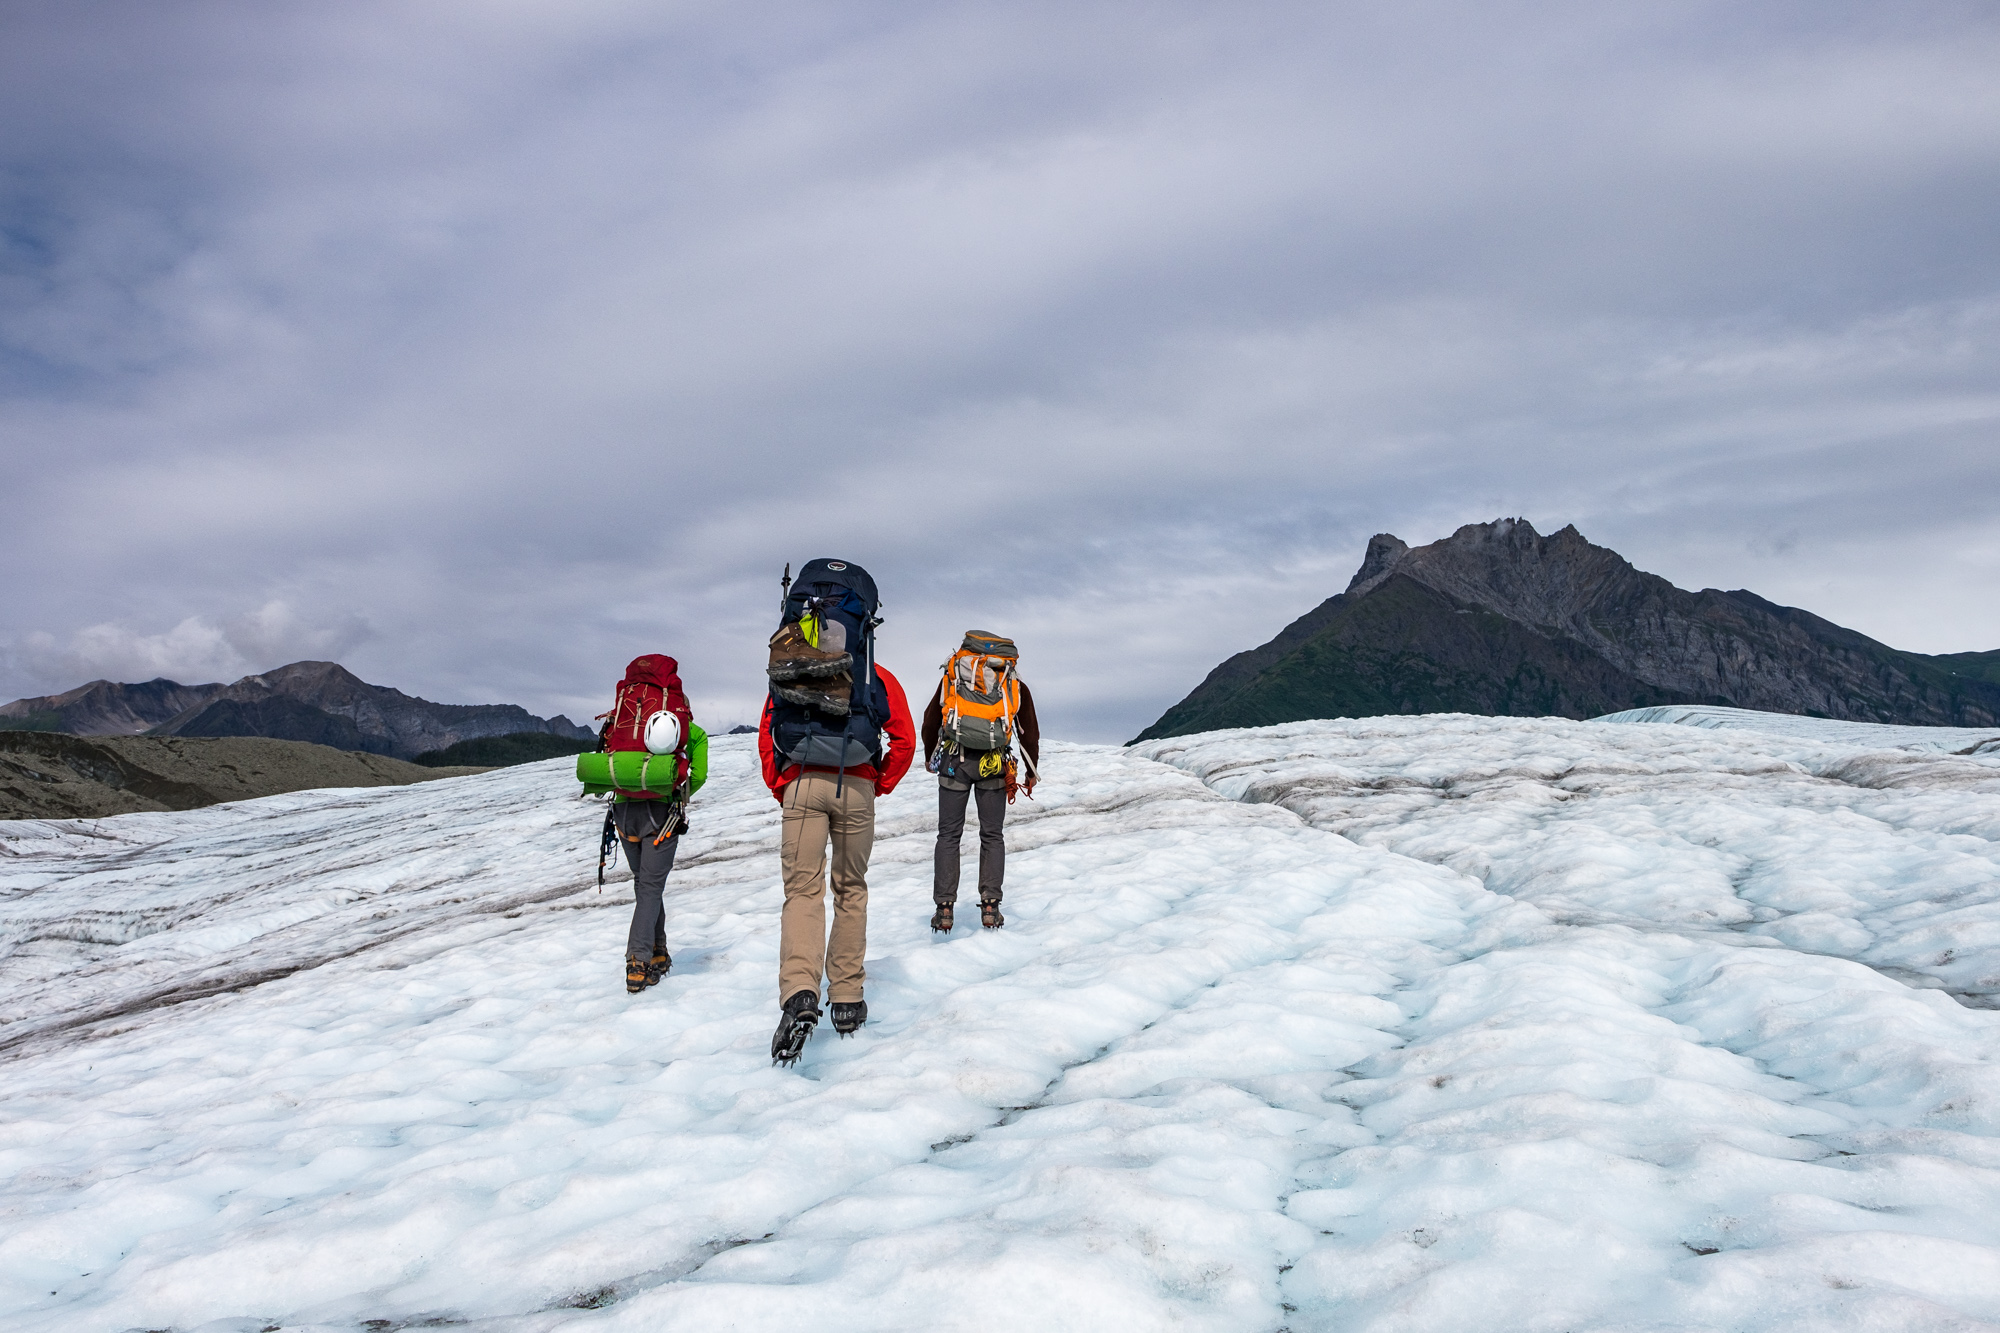 We were soon walking on the glacier with crampons strapped onto our shoes.